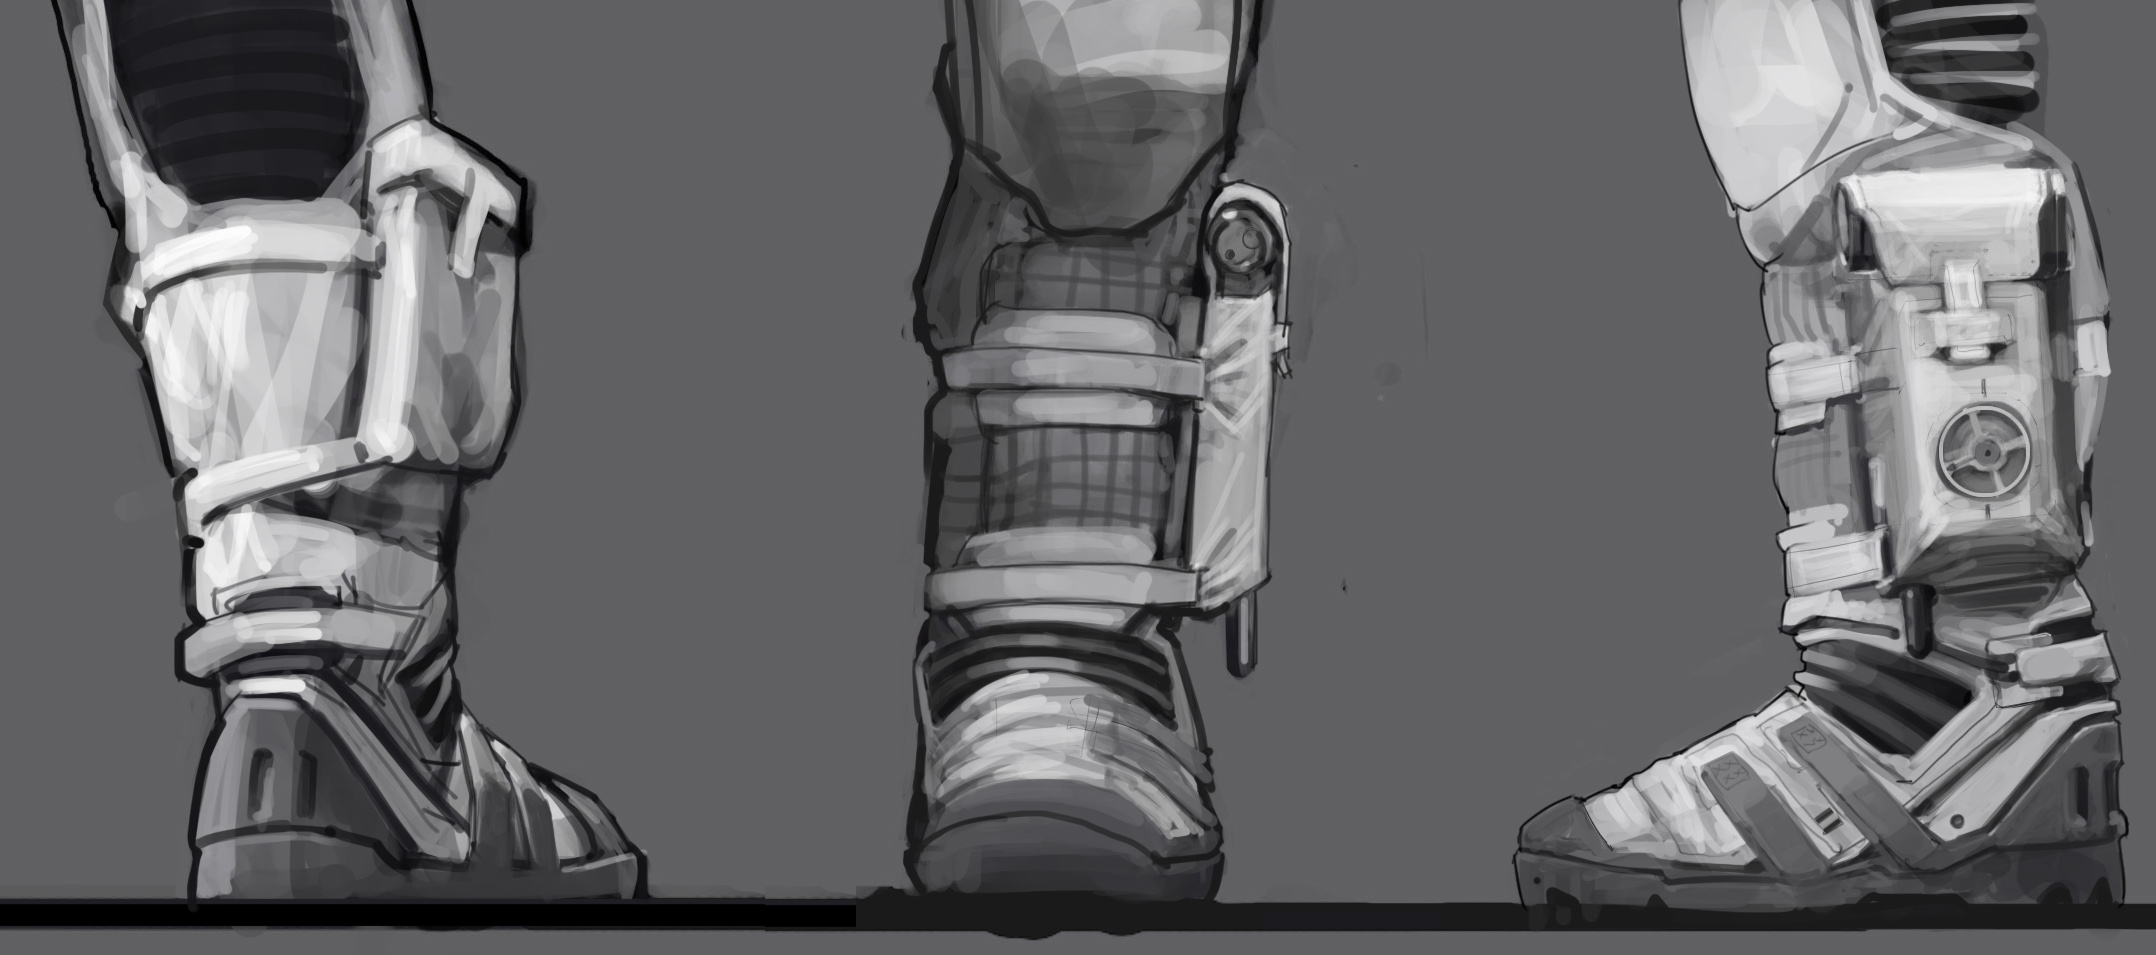 interstellar_space_suit_boot